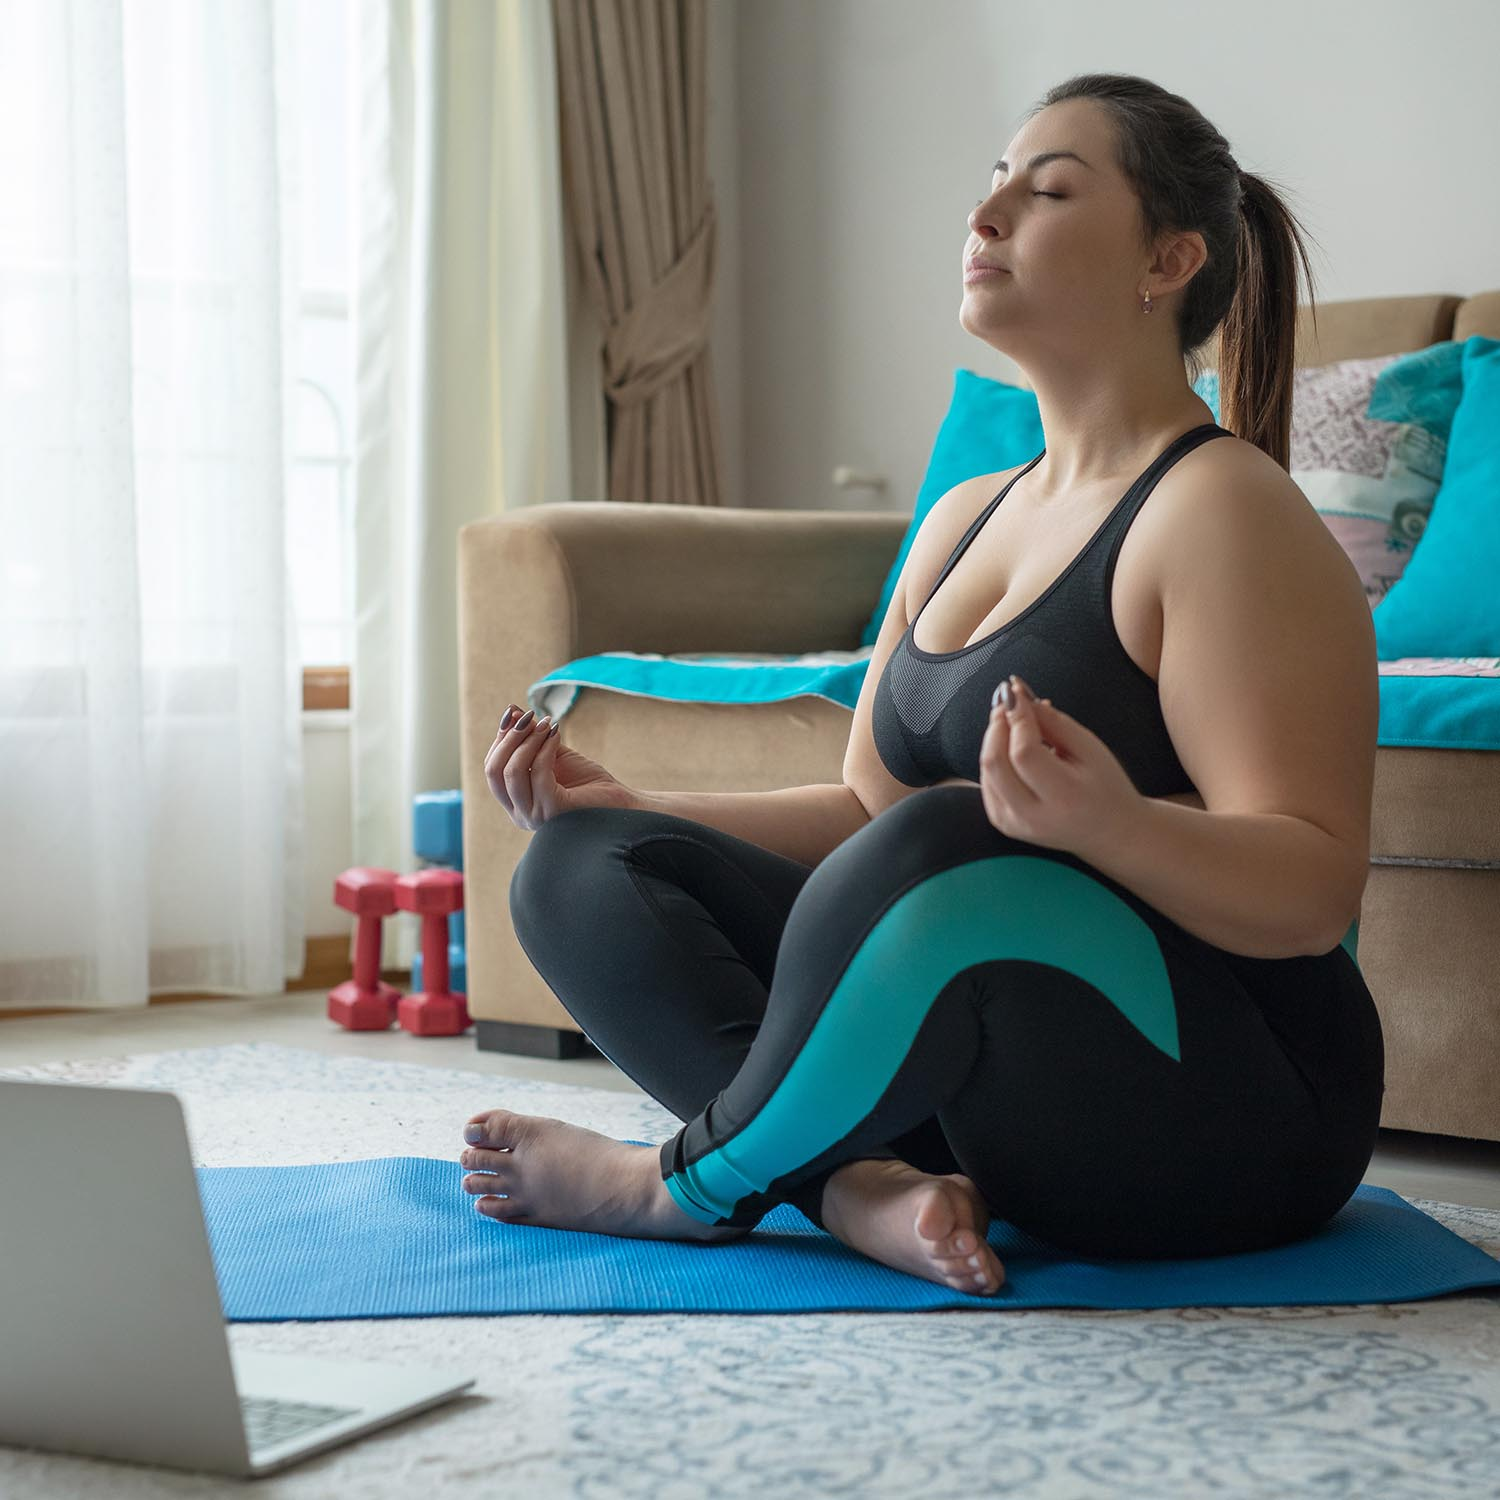 Overweight woman doing a yoga pose